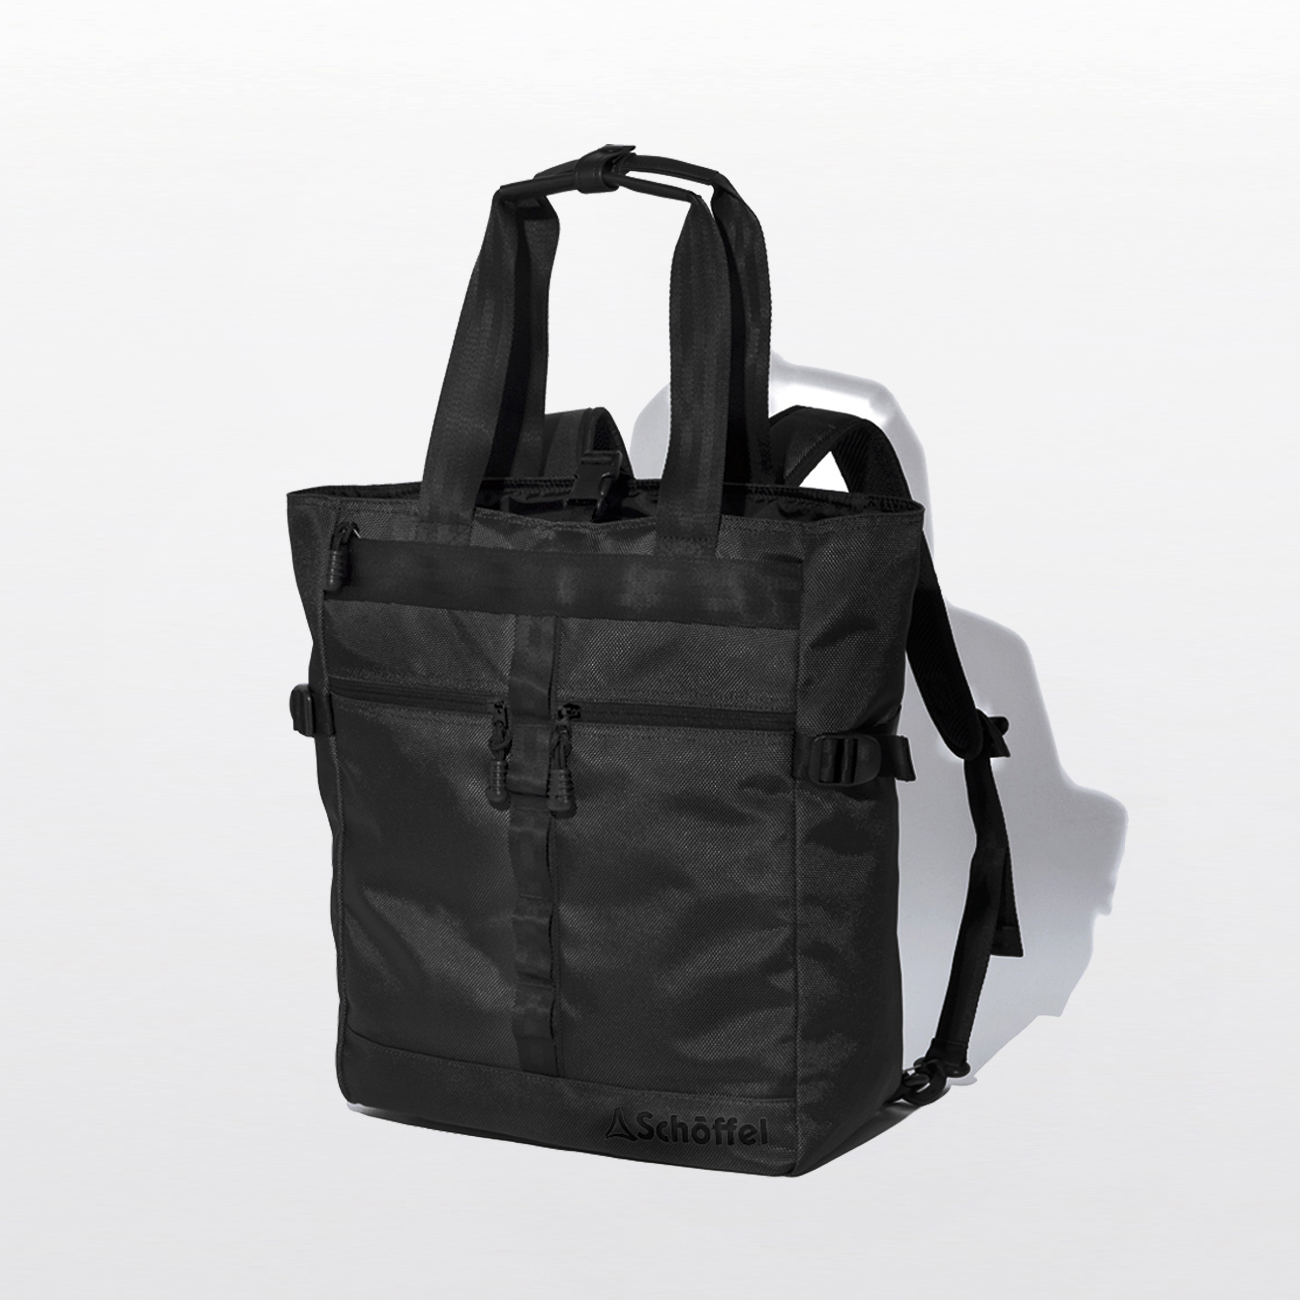 Schoffel (ショッフェル) 2WAY SQUARE TOTE BAG / BLK*BLK(Unisex)